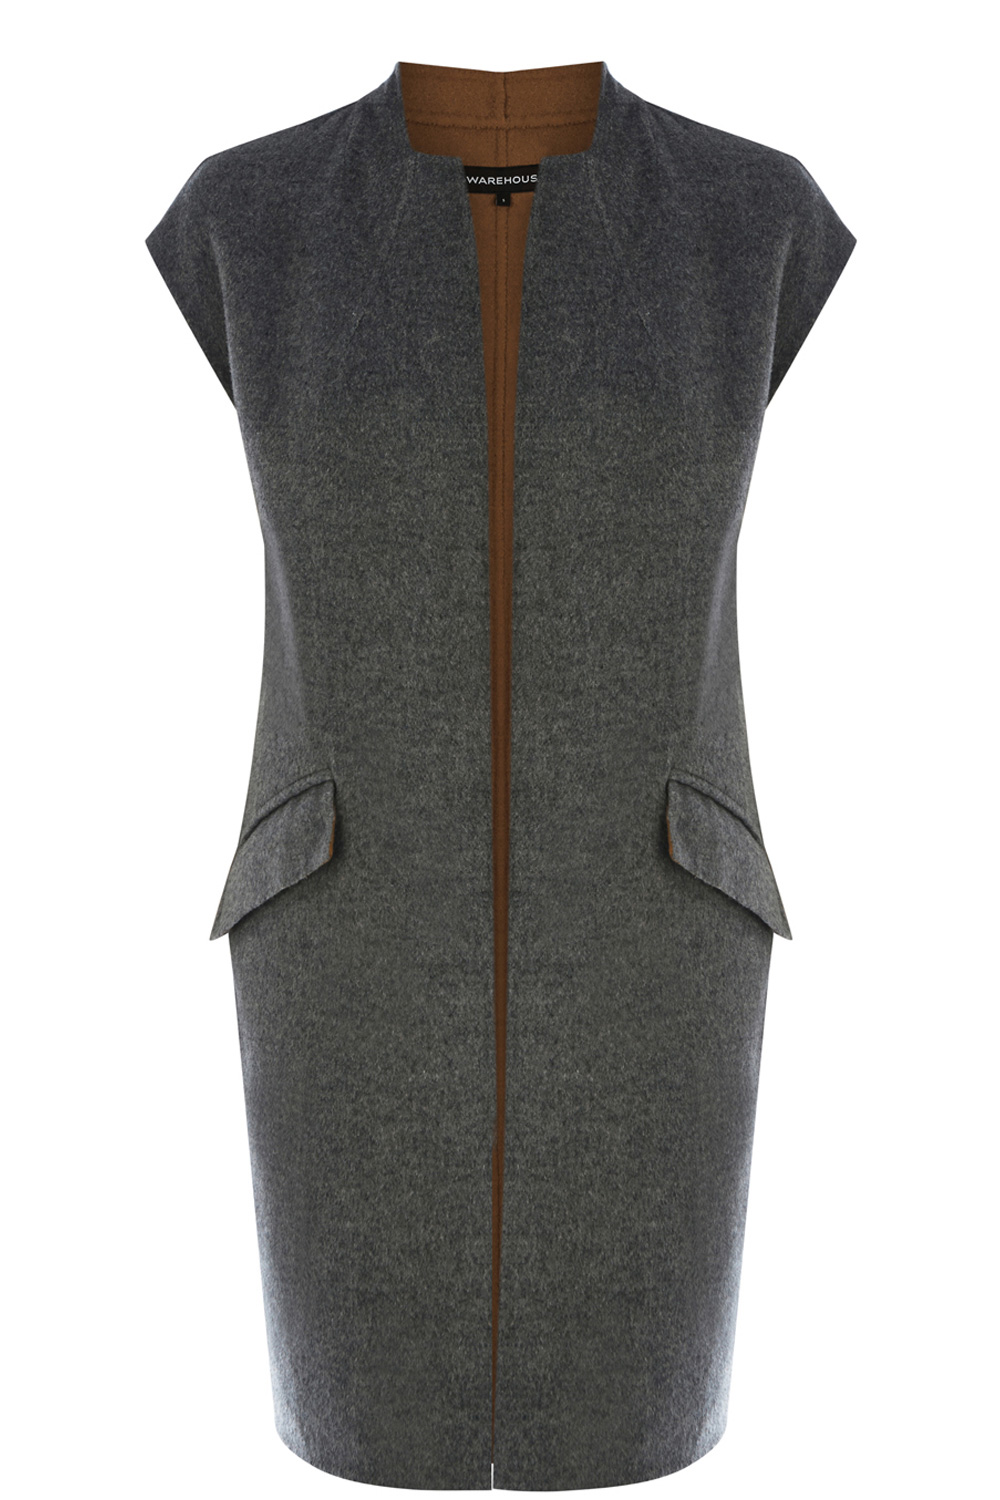 http://www.warehouse.co.uk/sleeveless-wool-coat/jackets-&-coats/warehouse/fcp-product/4223065470